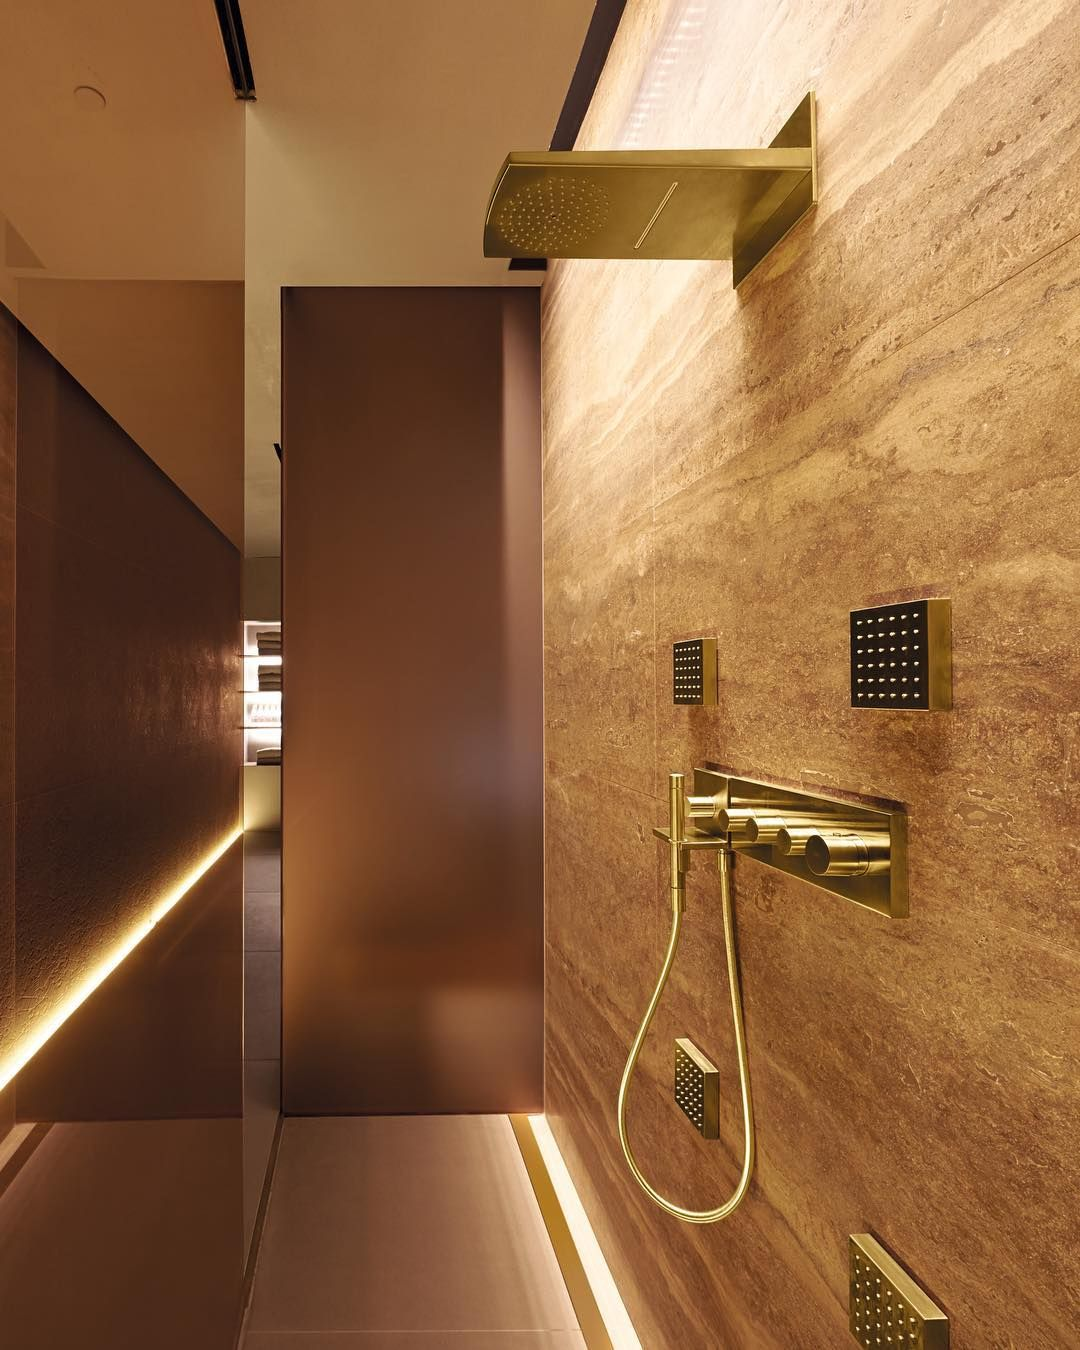 Four Seasons Hotel bathroom inspiration. AXOR ShowerCollection designed by Philippe Starck.  Kuhnle & Kn�dler�  @fsmilan @starck   #AXOR #AXORnordic #AXORFinishPlus #PhilippeStarck #FormFollowsPerfection #fsmilan #milan #bathroomdesign #interiordecor #int